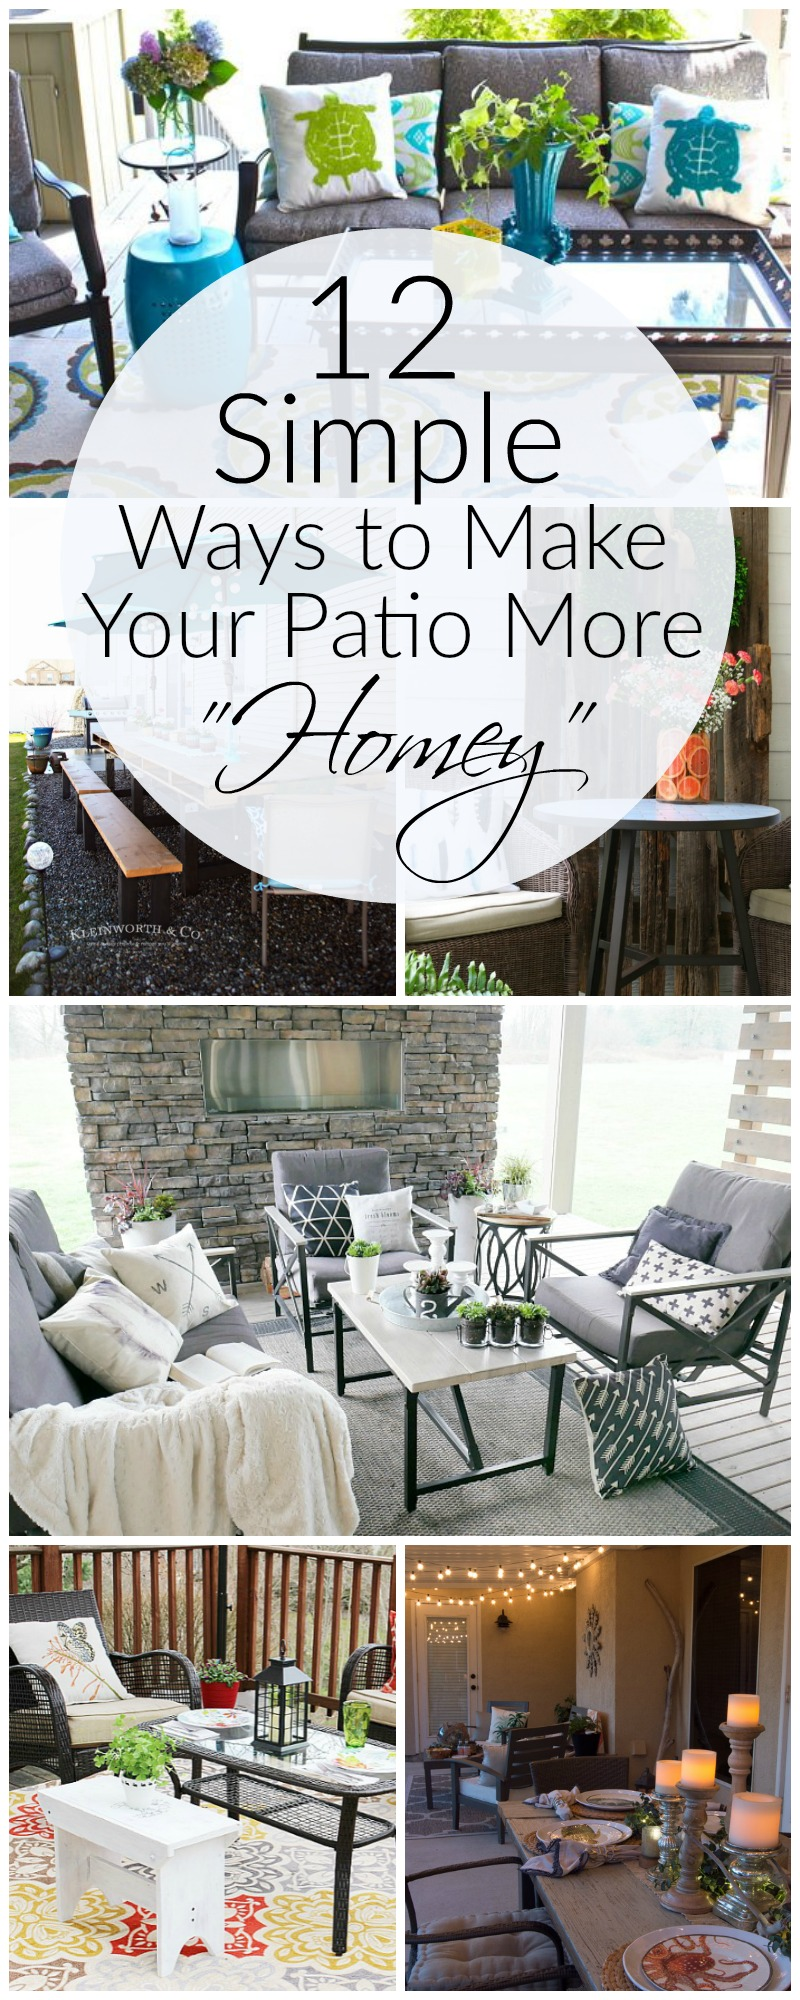 12 simple ways to make your patio or deck more homey. Add coziness by doing these simple tips | awonderfulthought.com